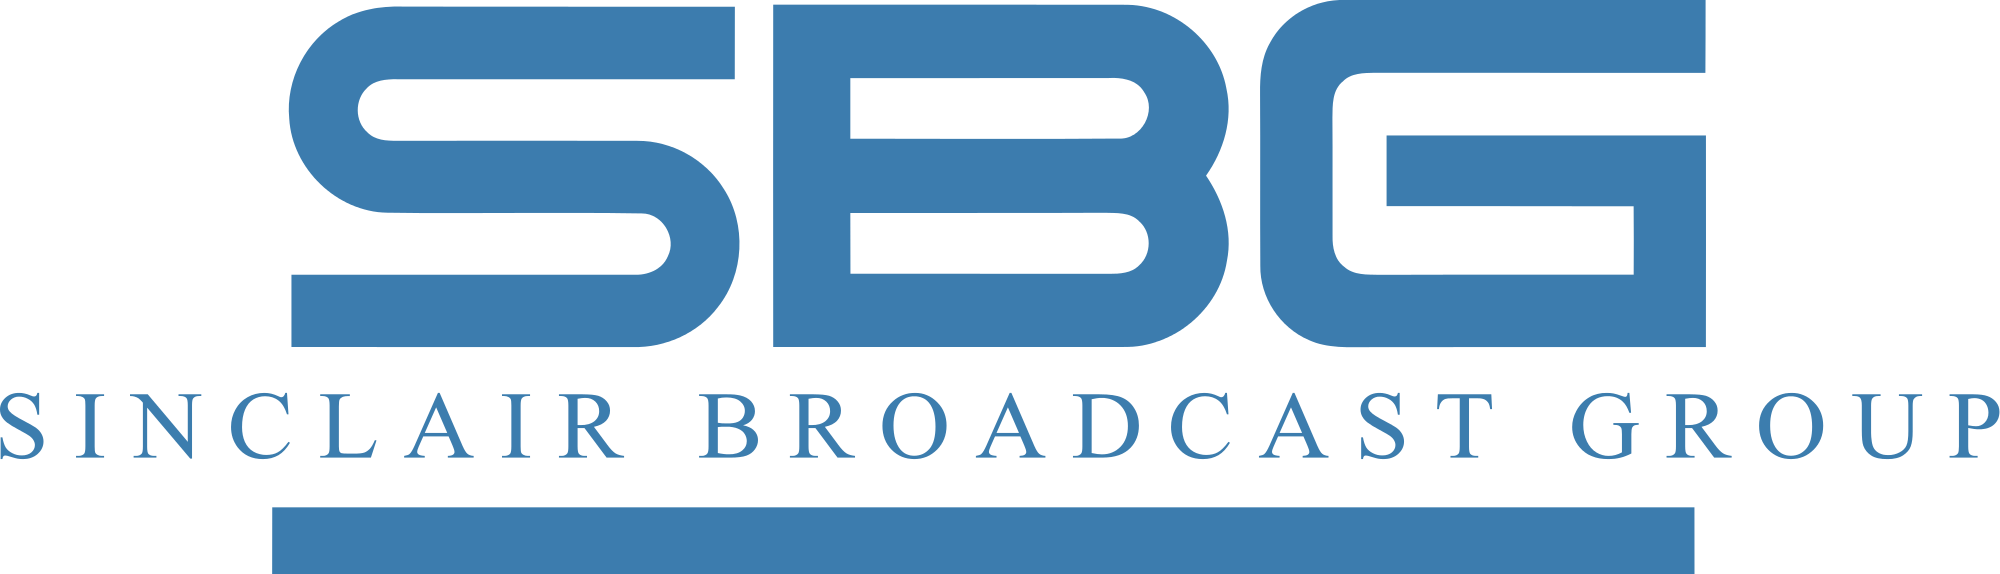 Sinclair Broadcast Group Inc. (SBGI)